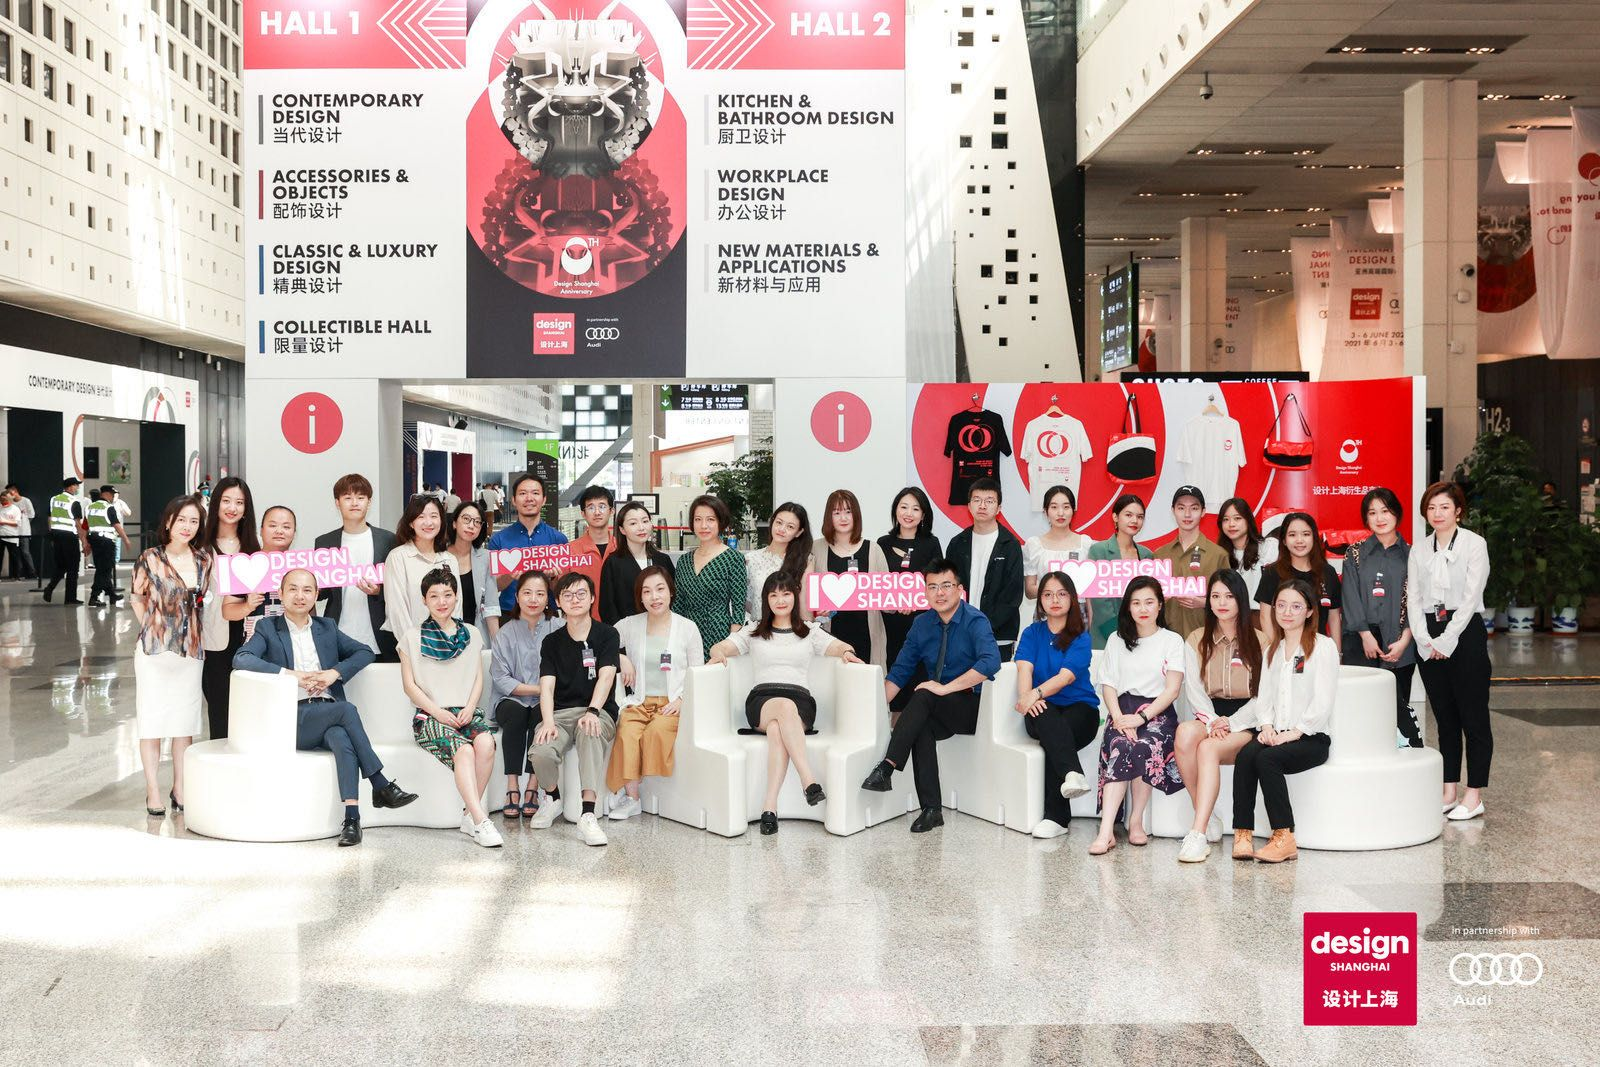 Design Shanghai 8th Edition Welcomed Over 70,000 Visitors During the Last 4 Days